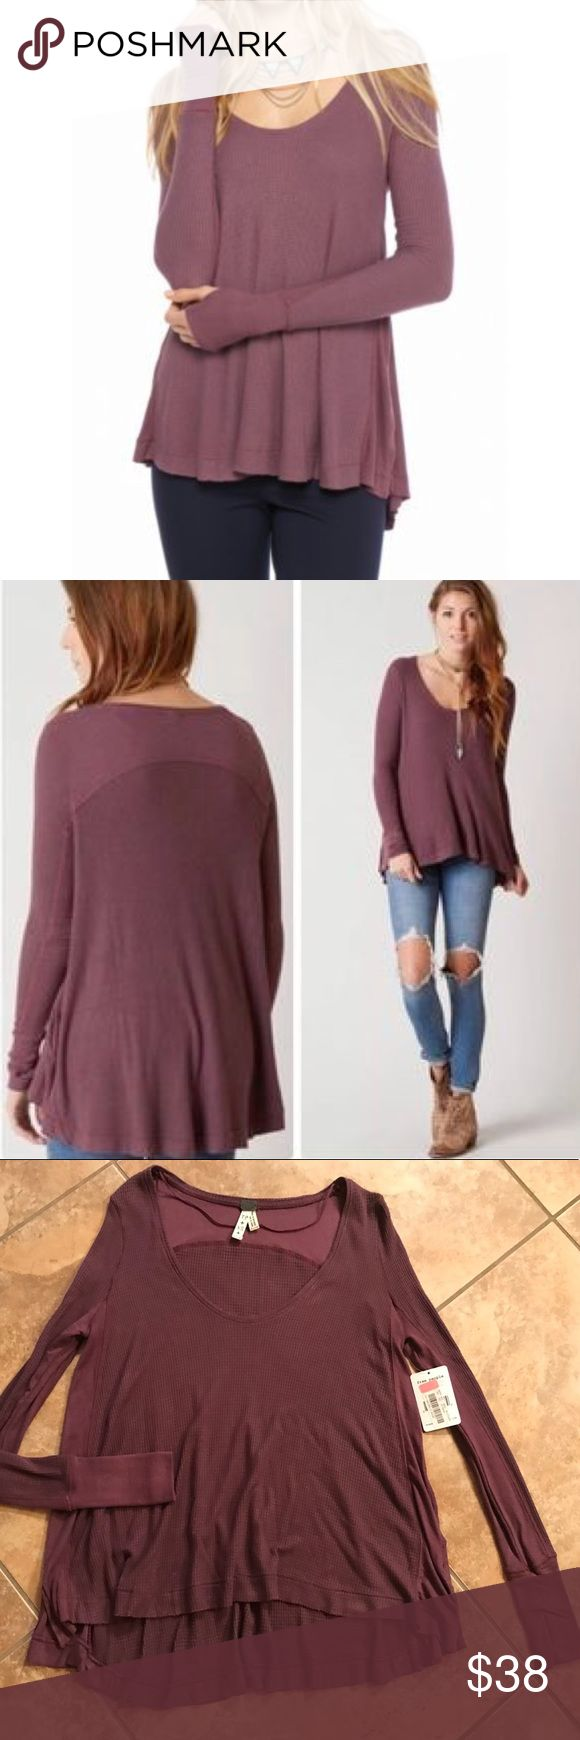 Free People Malibu Thermal Twilight Mauve NWT NWT! Free People Malibu Thermal in Twilight Mauve, a muted purple color. Cut from a supersoft thermal knit, this cozy top gets a stylish update in the form of a swingy boho back panel that adds playful volume to the casual silhouette. Definitely one of my favorite styles but I already have so many other colors! NWT (hang tag does have a sale sticker present). Free People Sweaters